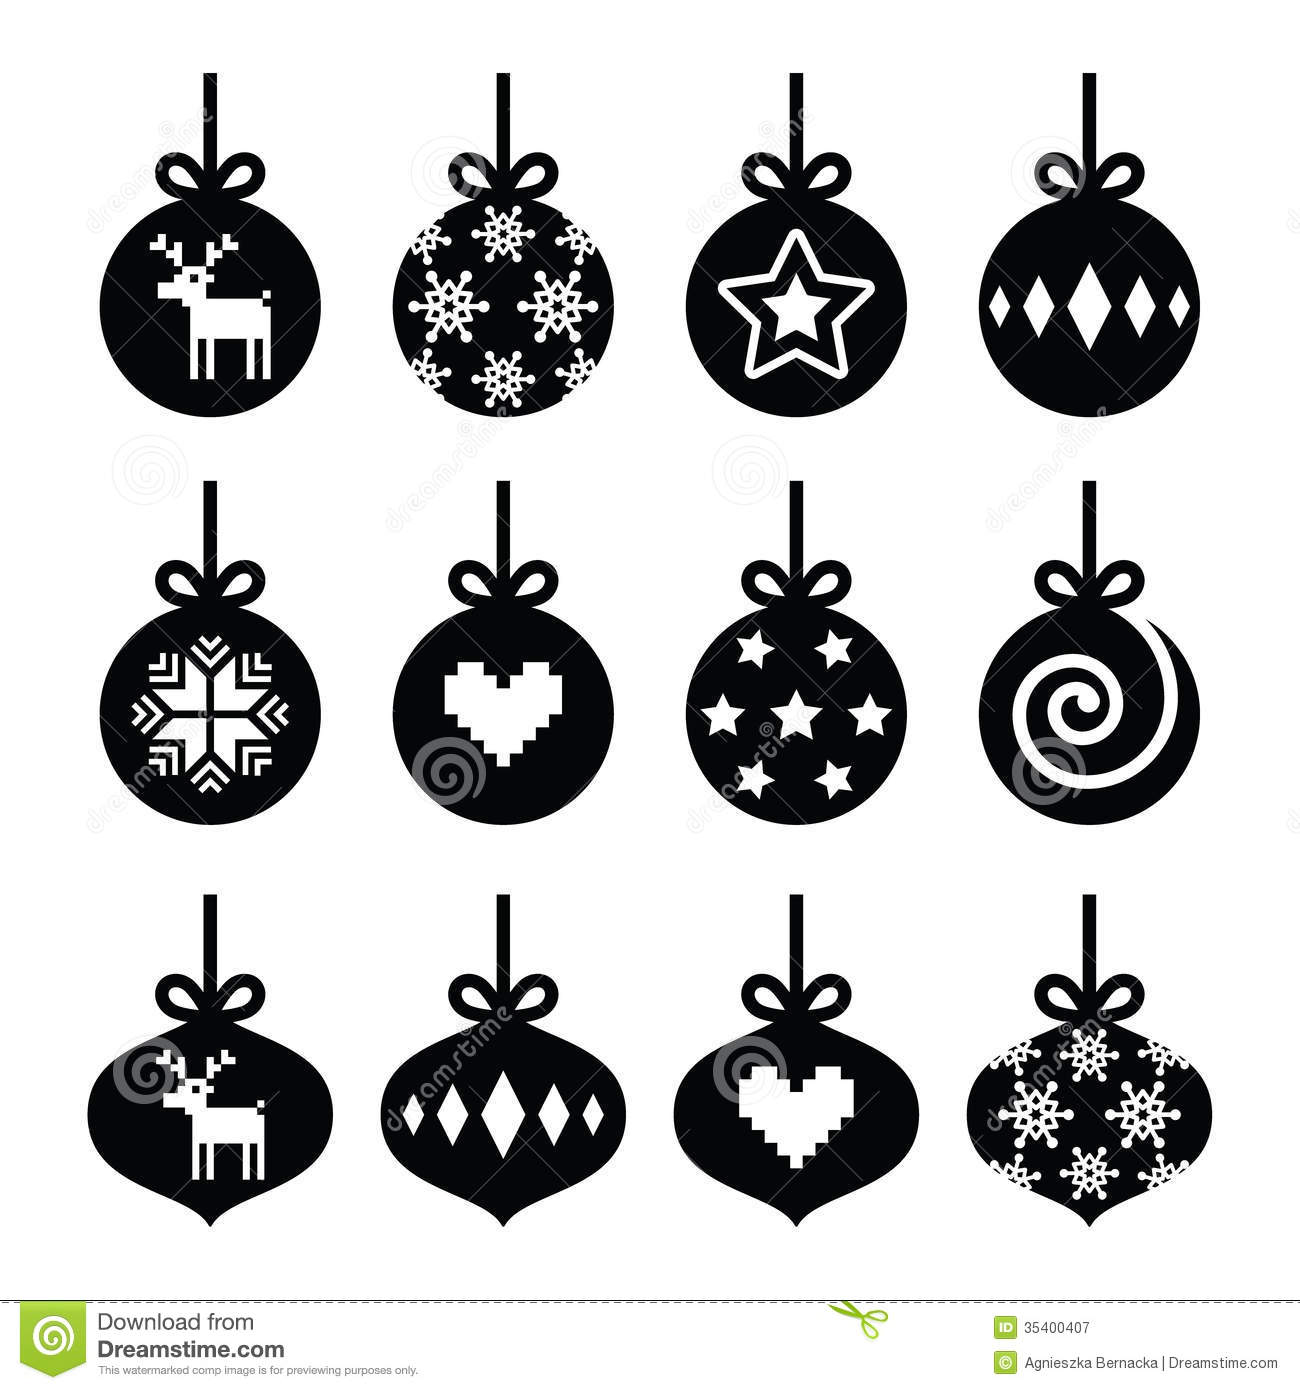 Winter holiday clipart black and white free png Winter Holiday Clipart Black And White - Free Clipart png